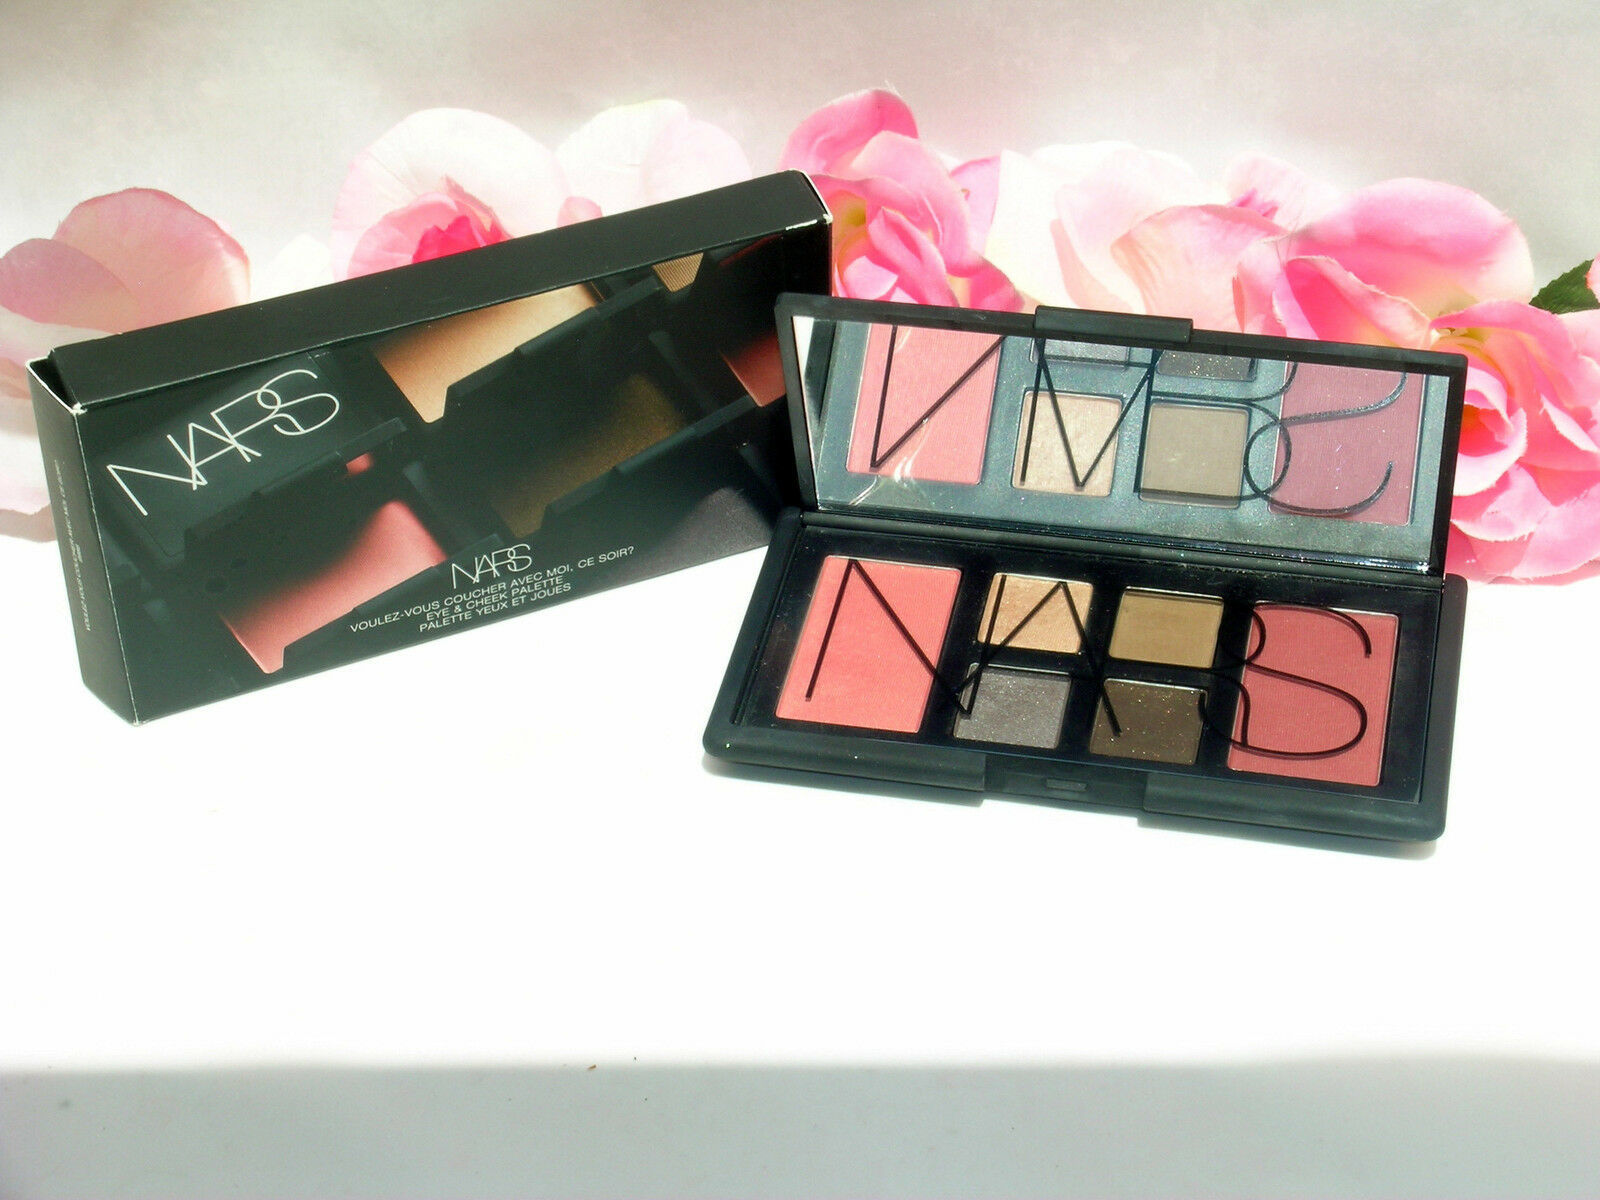 Primary image for New NARS 4 Eyeshadow & 2 Blush Eye & Cheek Palette # 9986 6 Shades Deep Throat